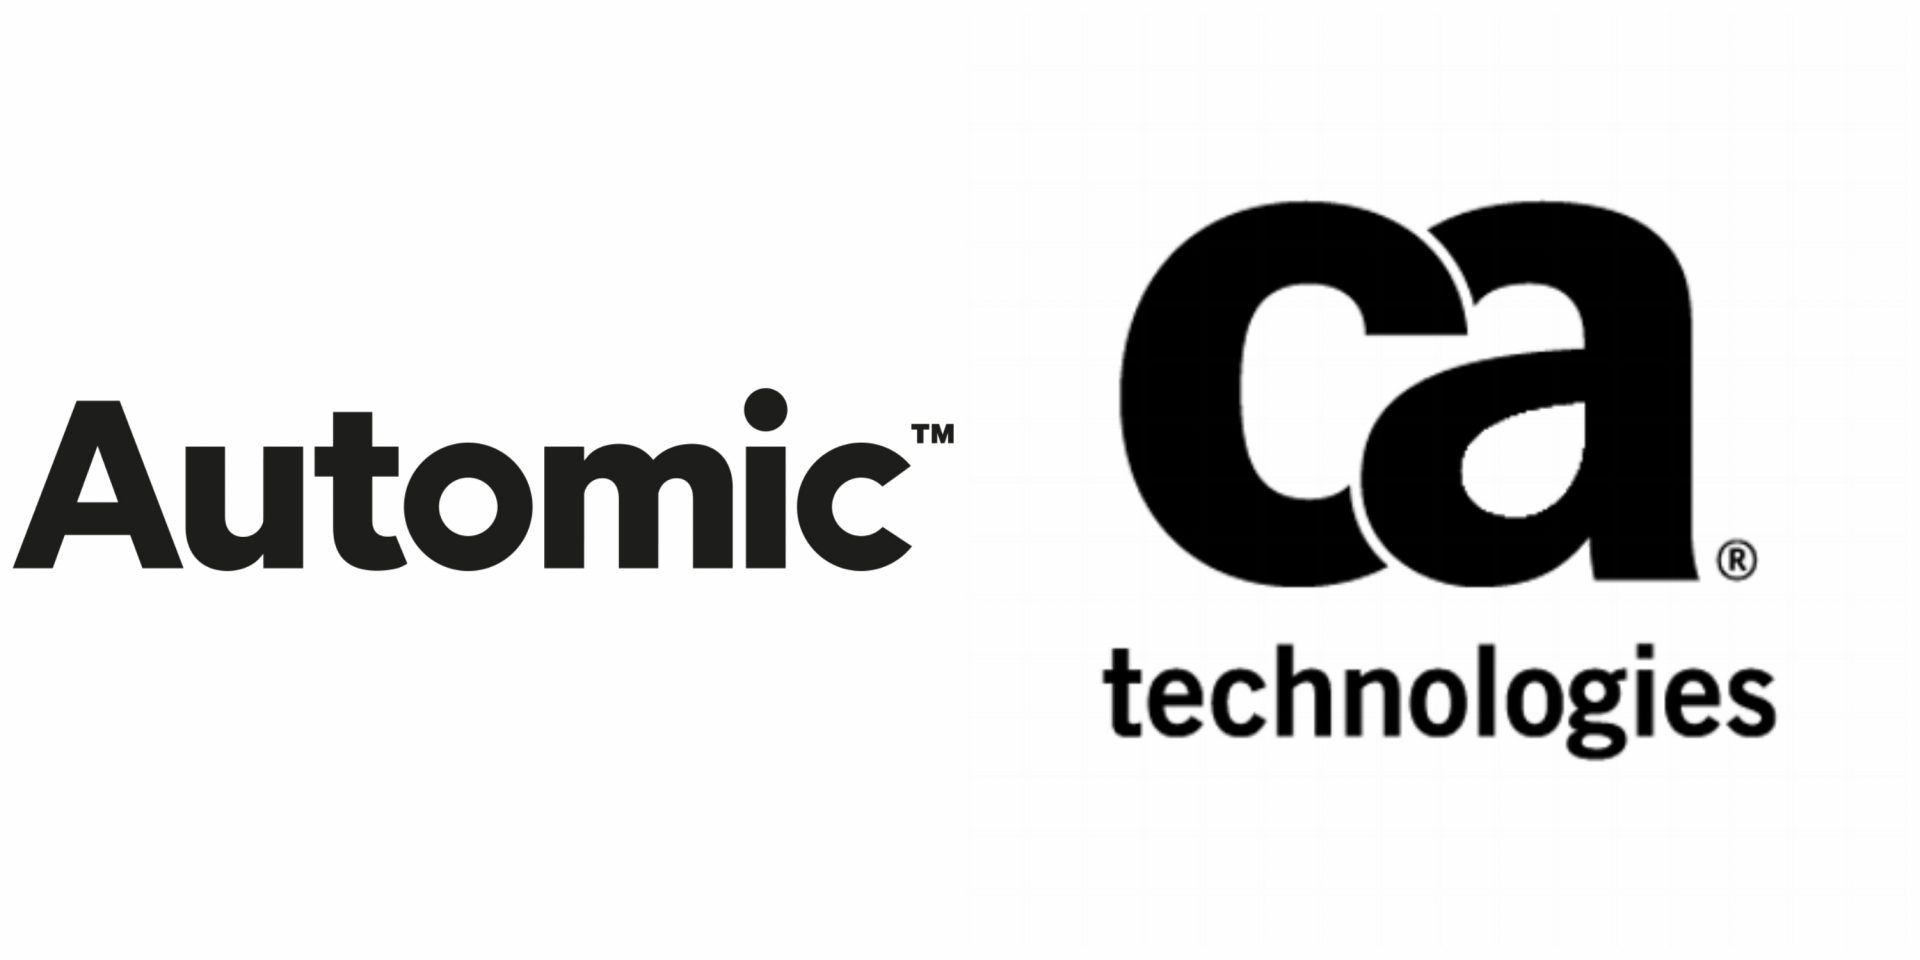 ca technologies acquires automic to broaden its cloud automation portfolio